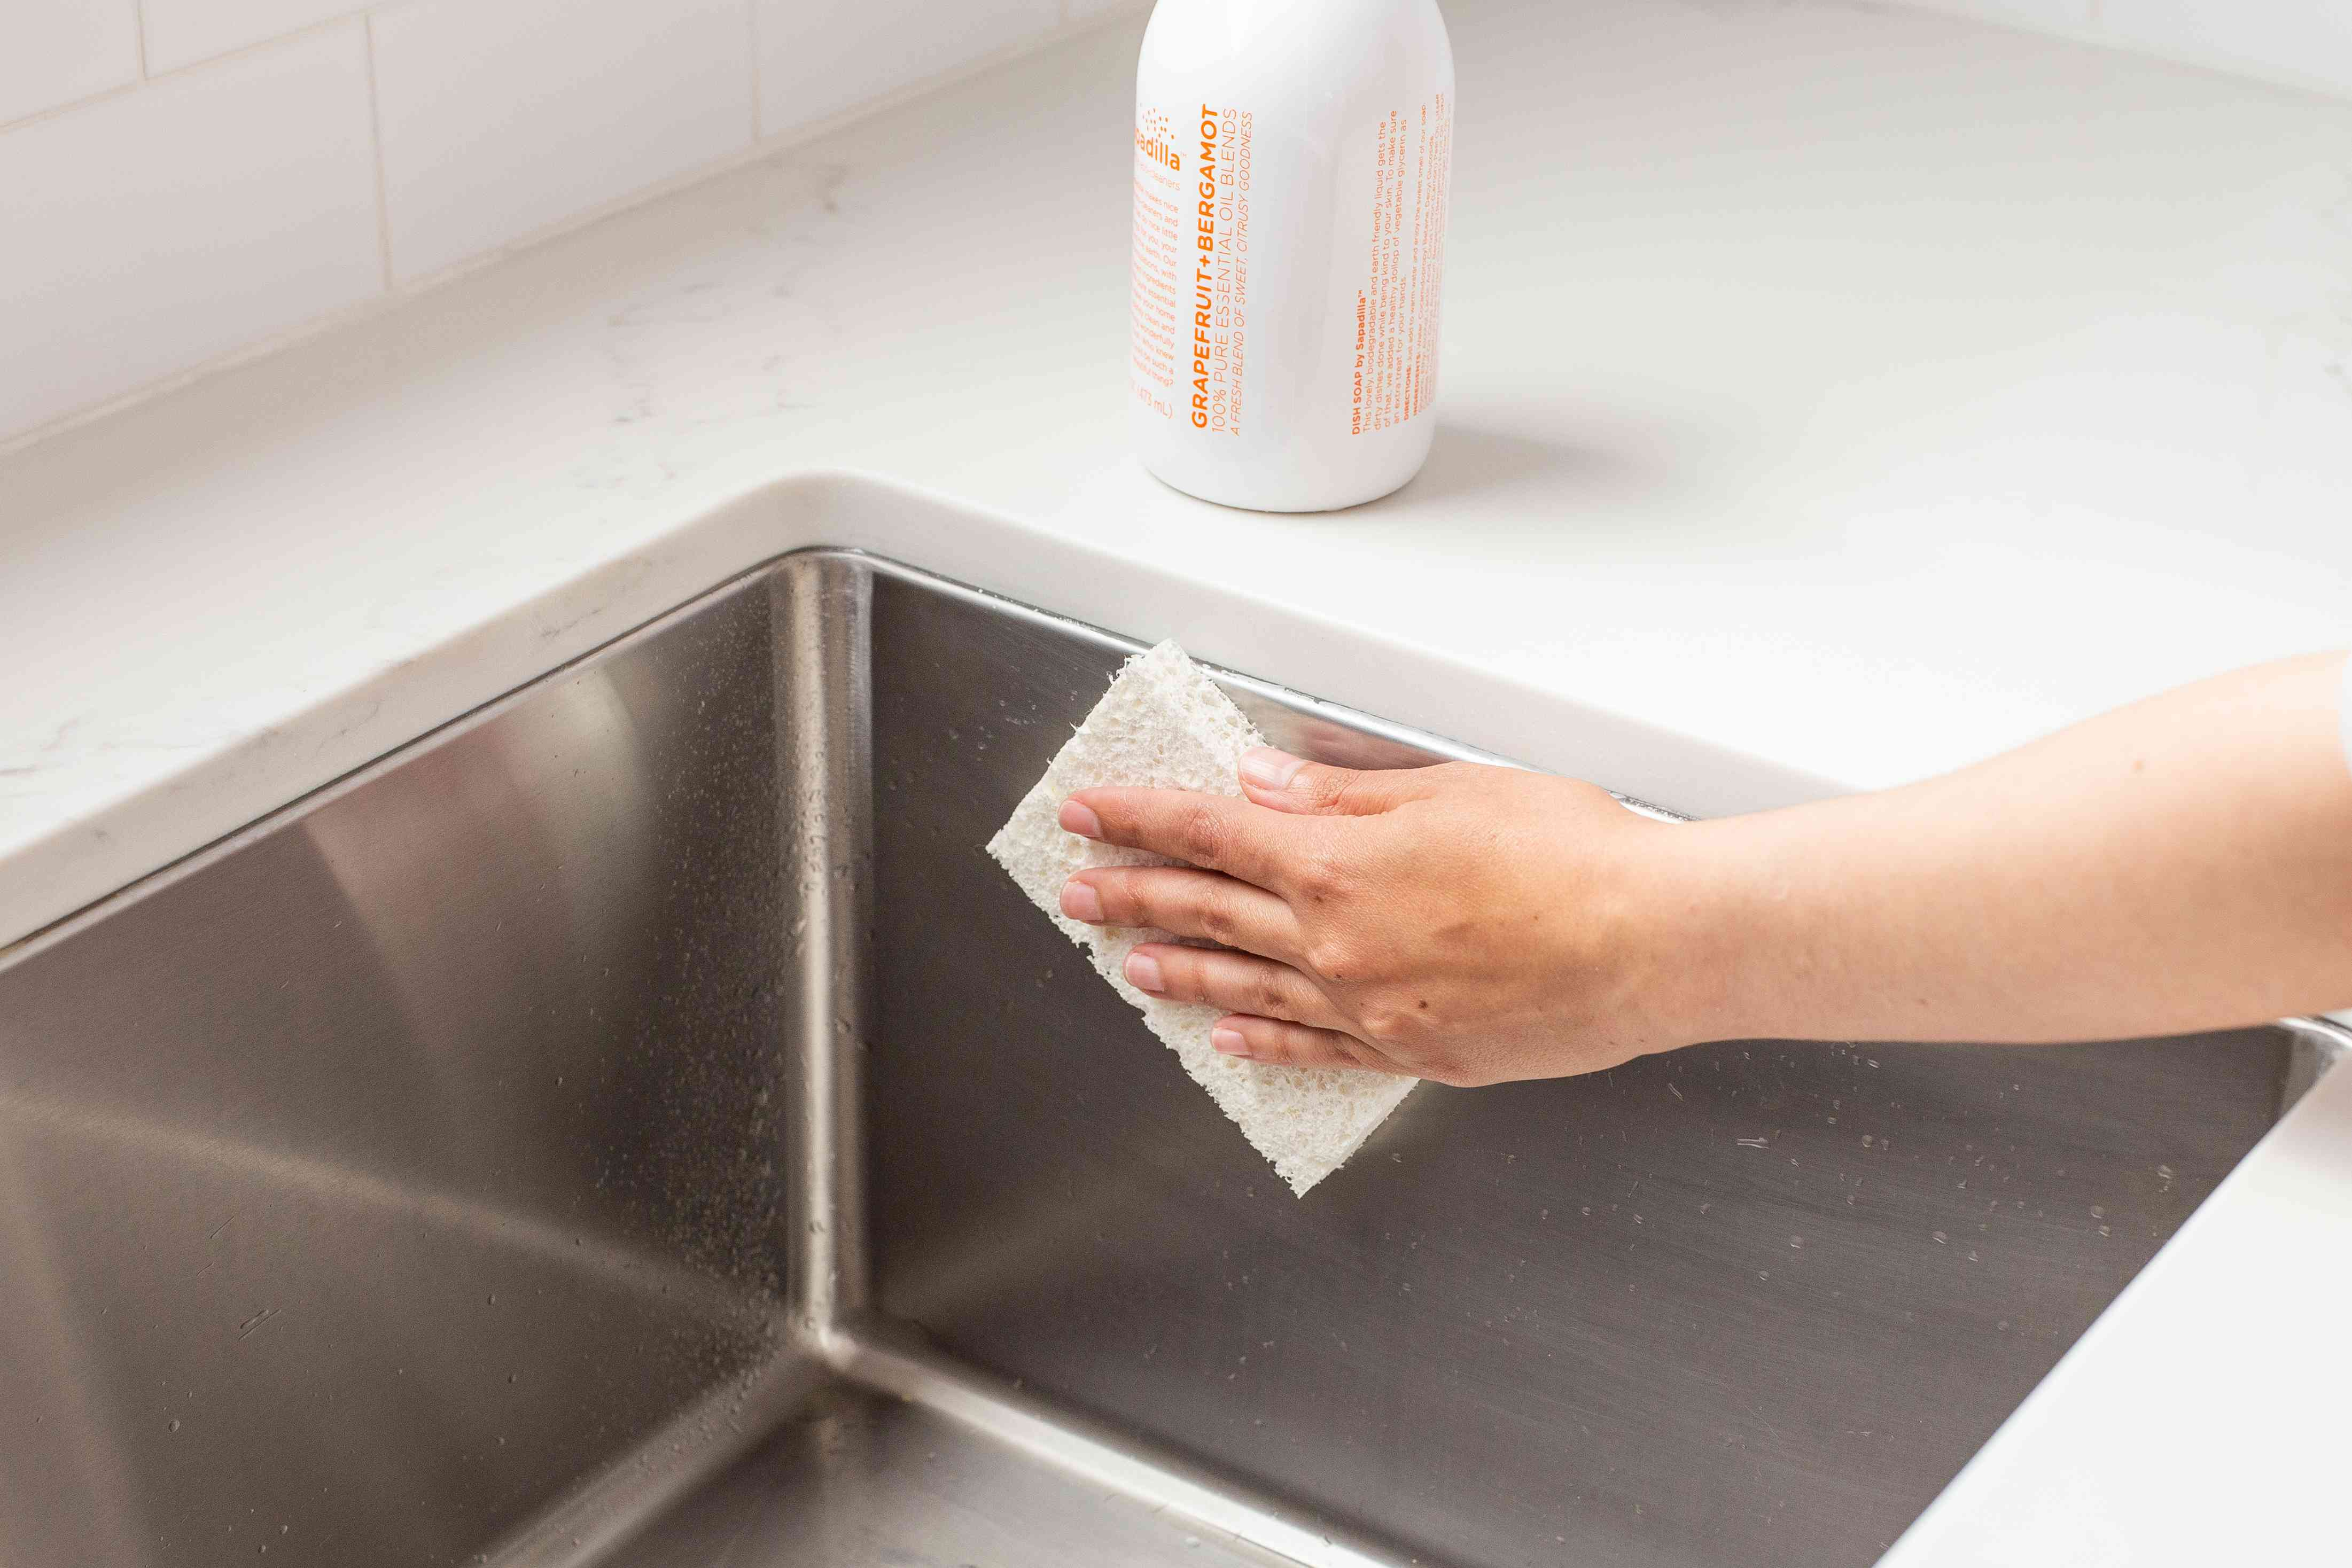 Dishwashing liquid and white sponge quickly cleaning stainless steel sink